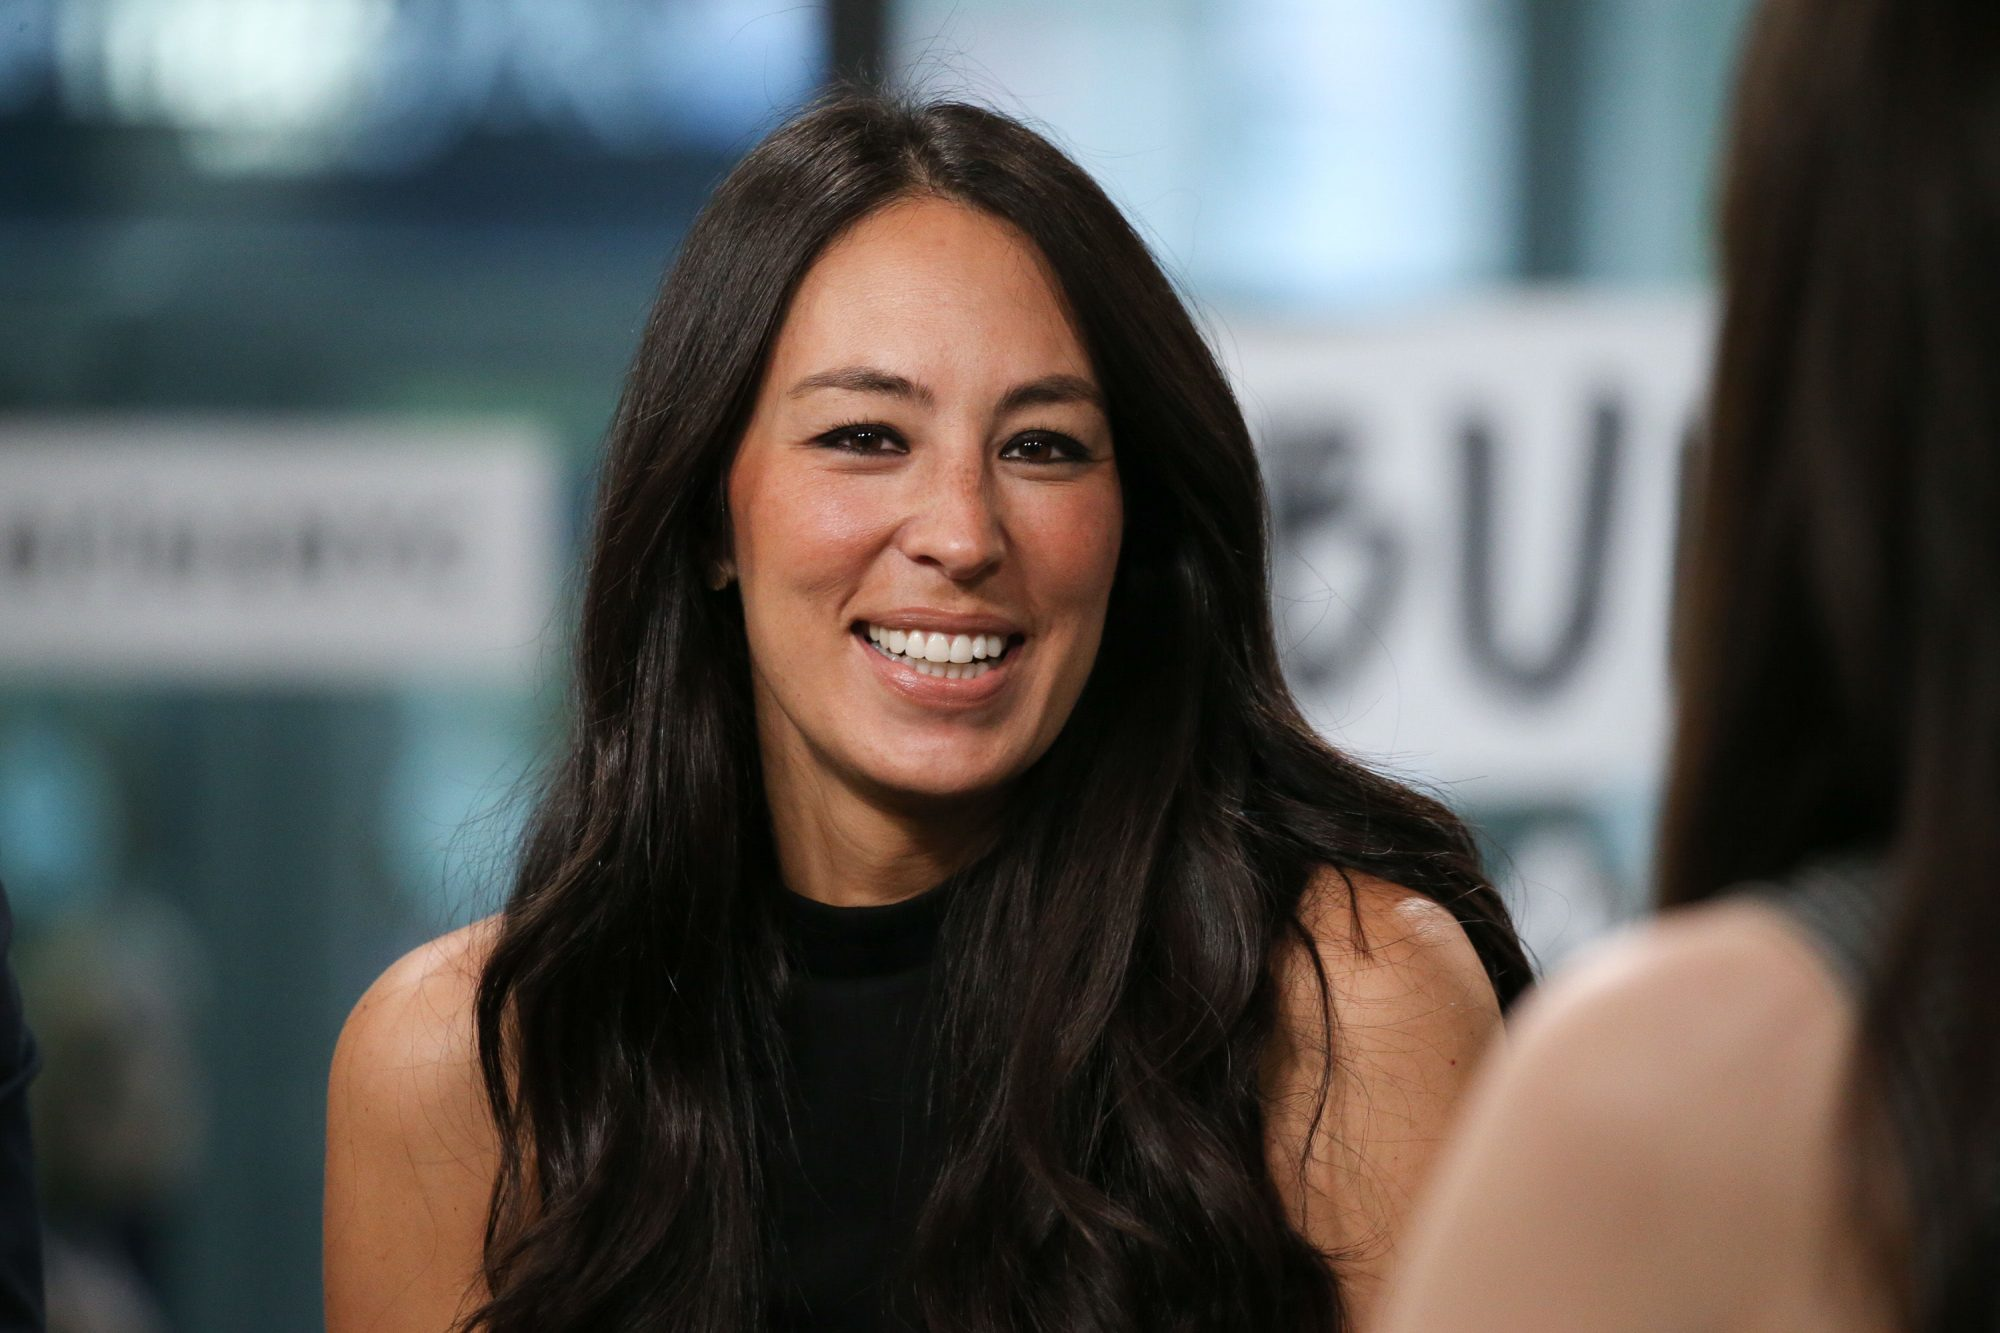 Joanna Gaines Had the Best Theme for Her Baby Shower This Weekend